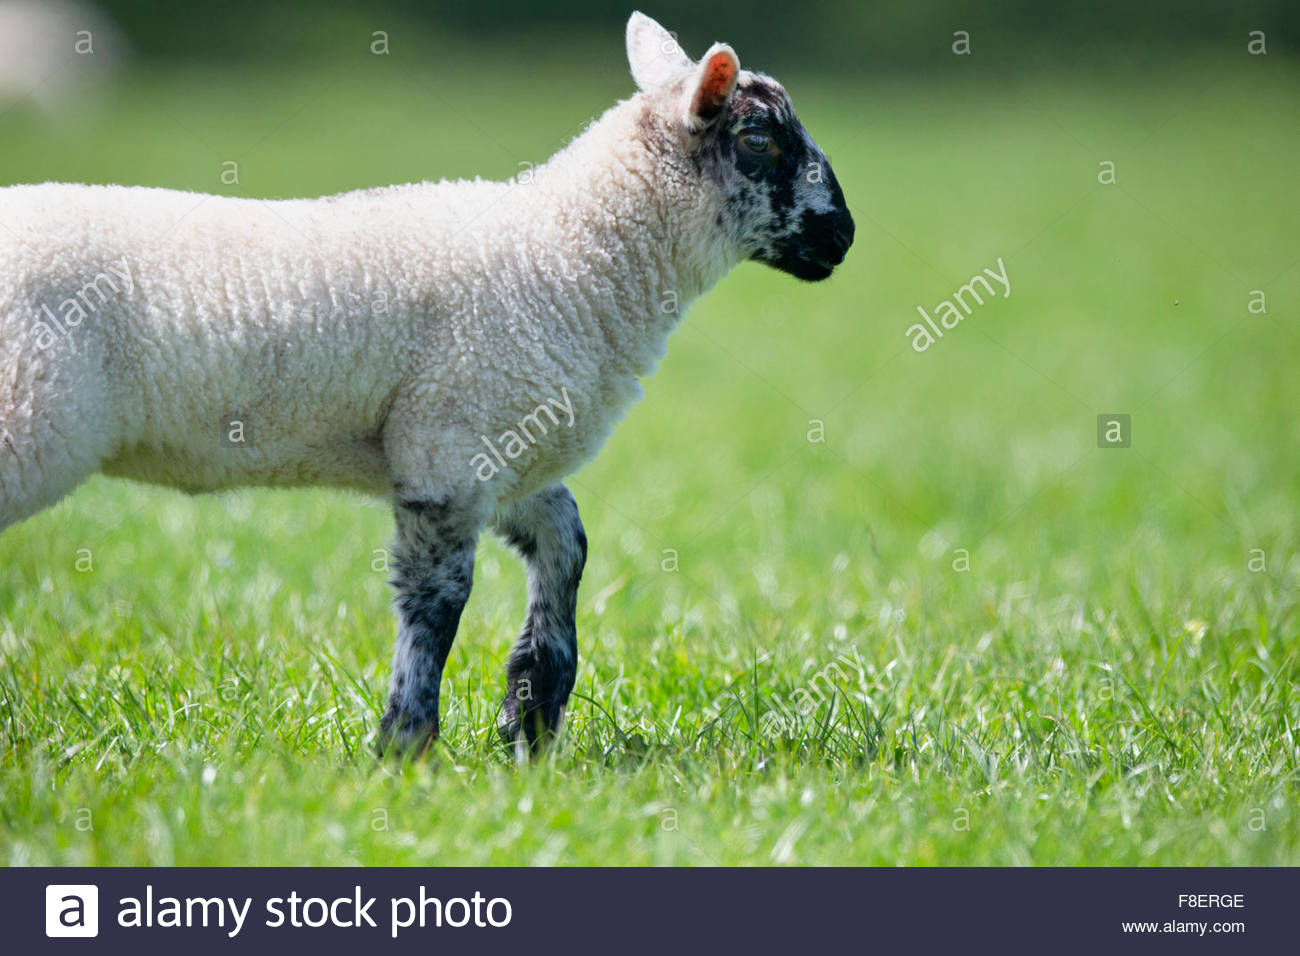 Lamb walking in sunny green spring grass - Stock Image